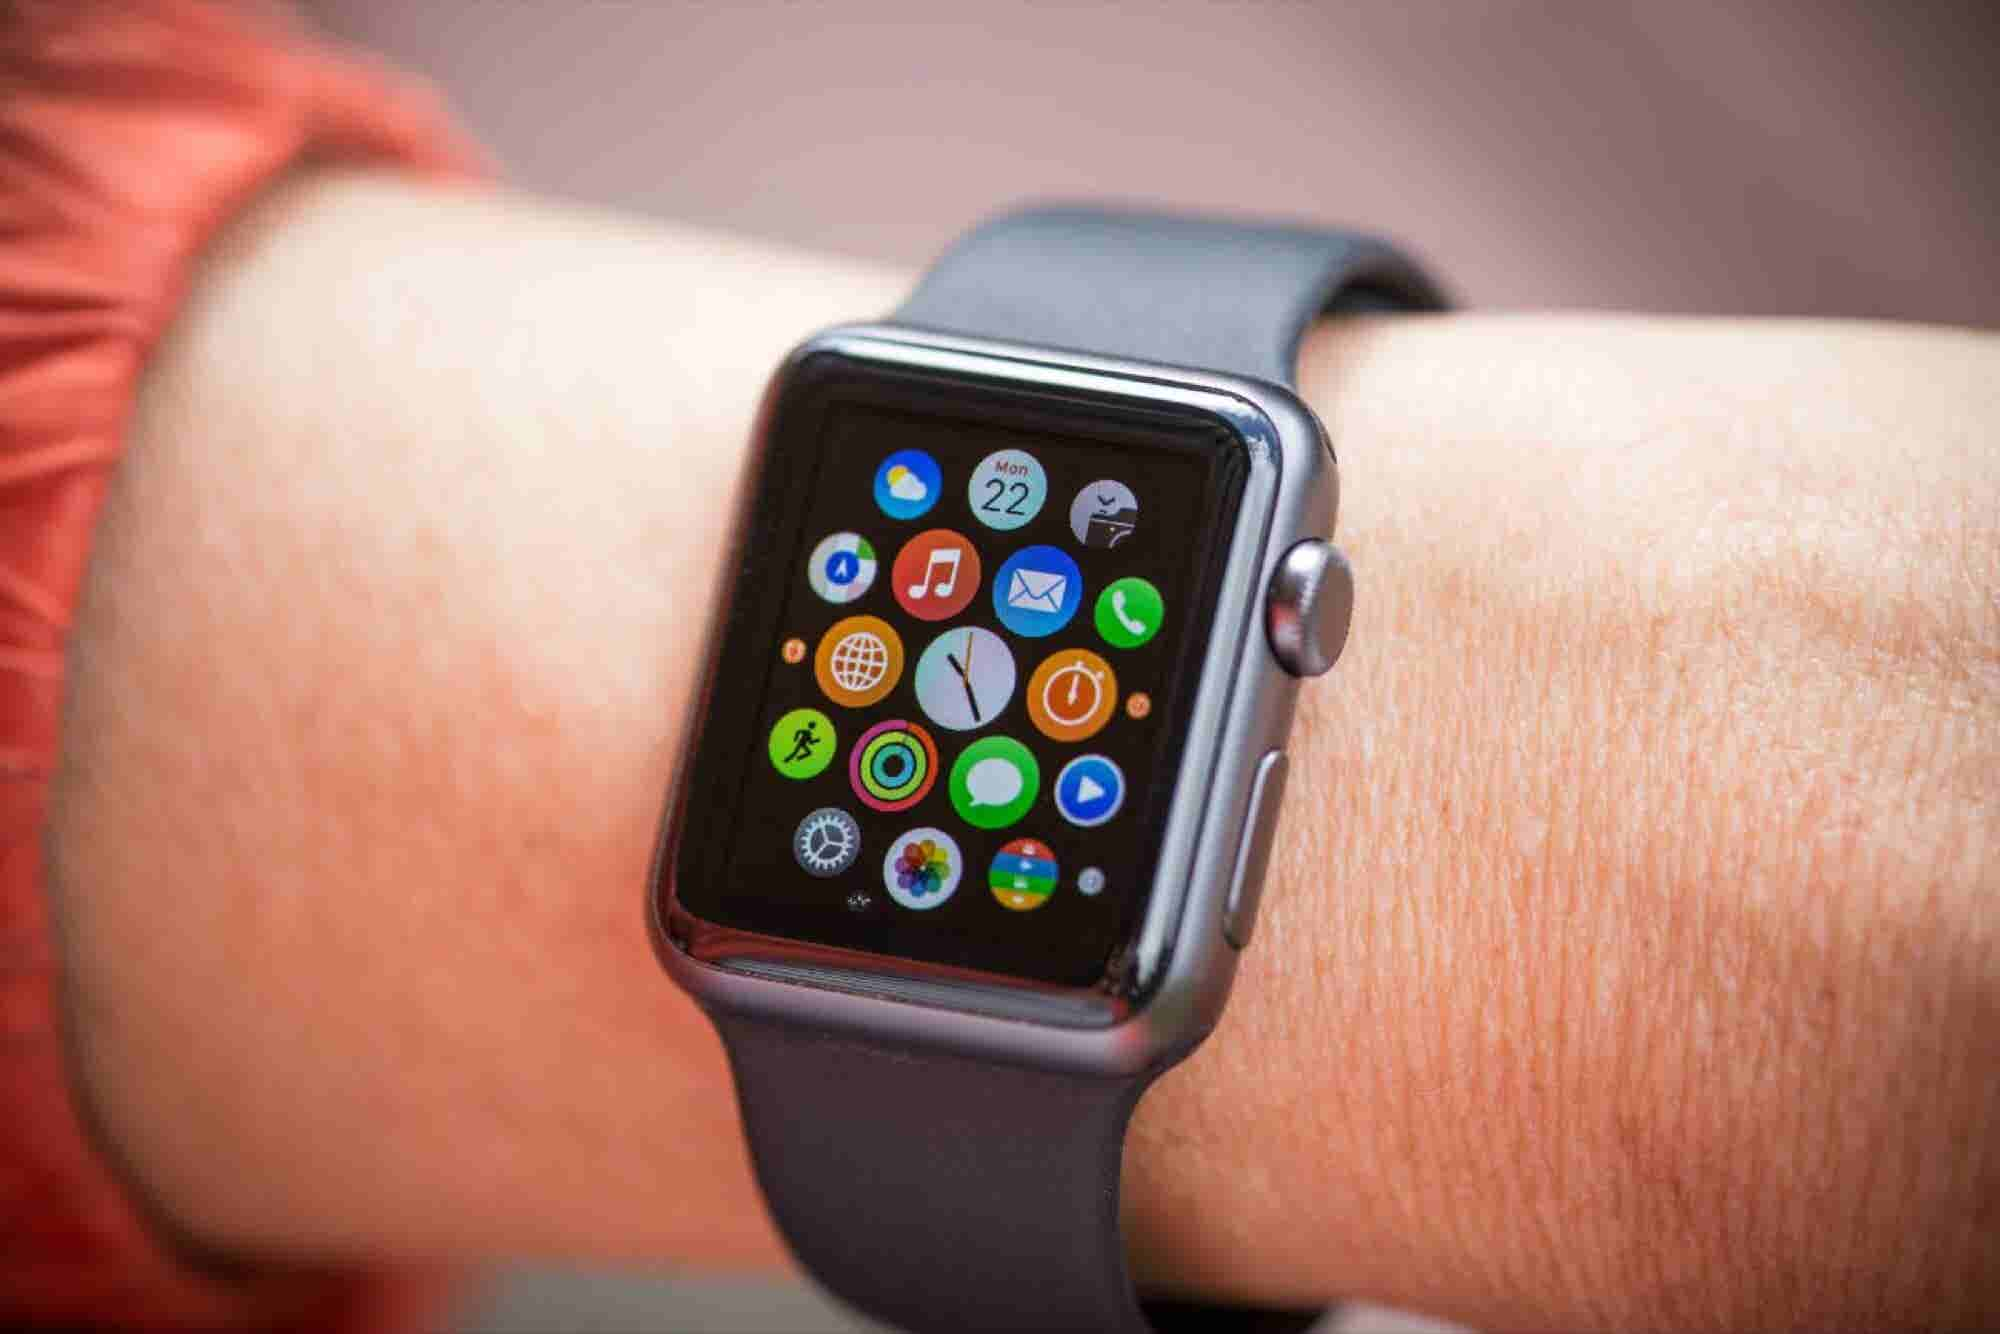 El Apple Watch cuidará a los pacientes de Parkinson